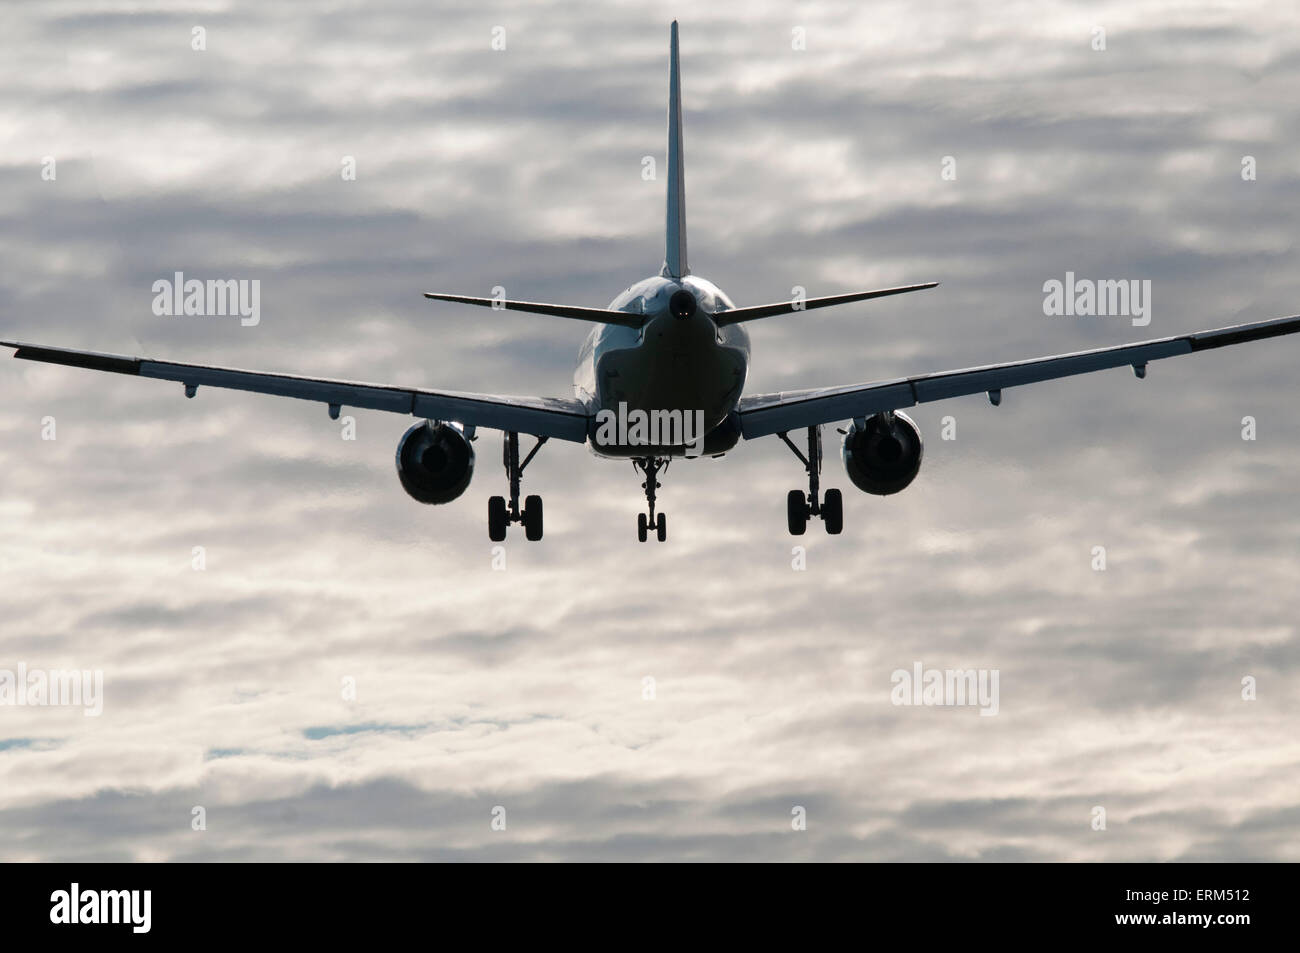 Commercial jet on final approach, in partial silhouette with backdrop of scattered cloud - Stock Image